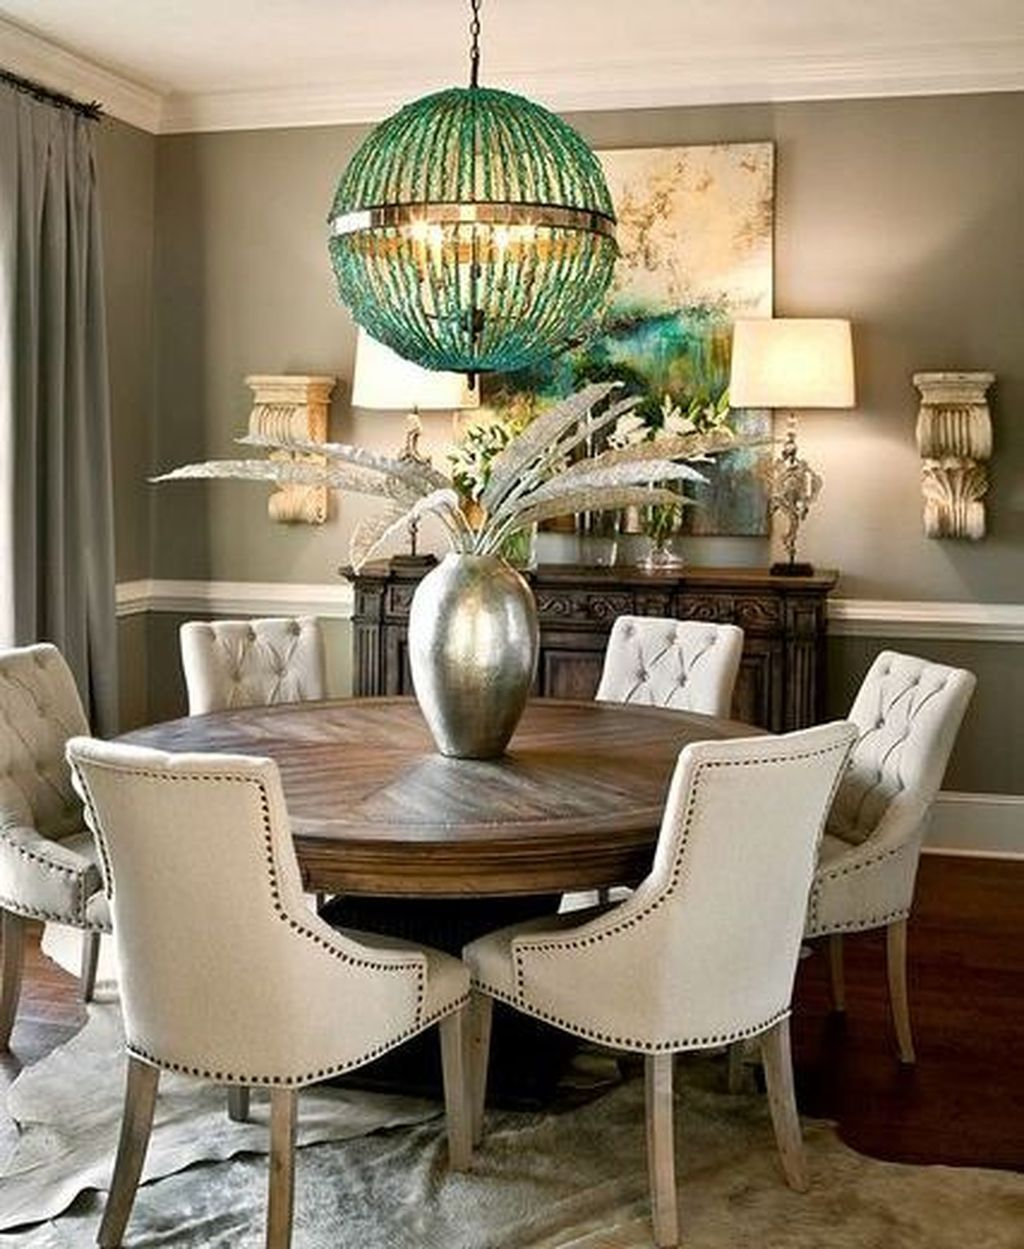 41 Amazing Dining Room Minimalist Designs That Are Simply And Inspire Find The Finest C Transitional Dining Room Dining Room Contemporary Dining Room Decor